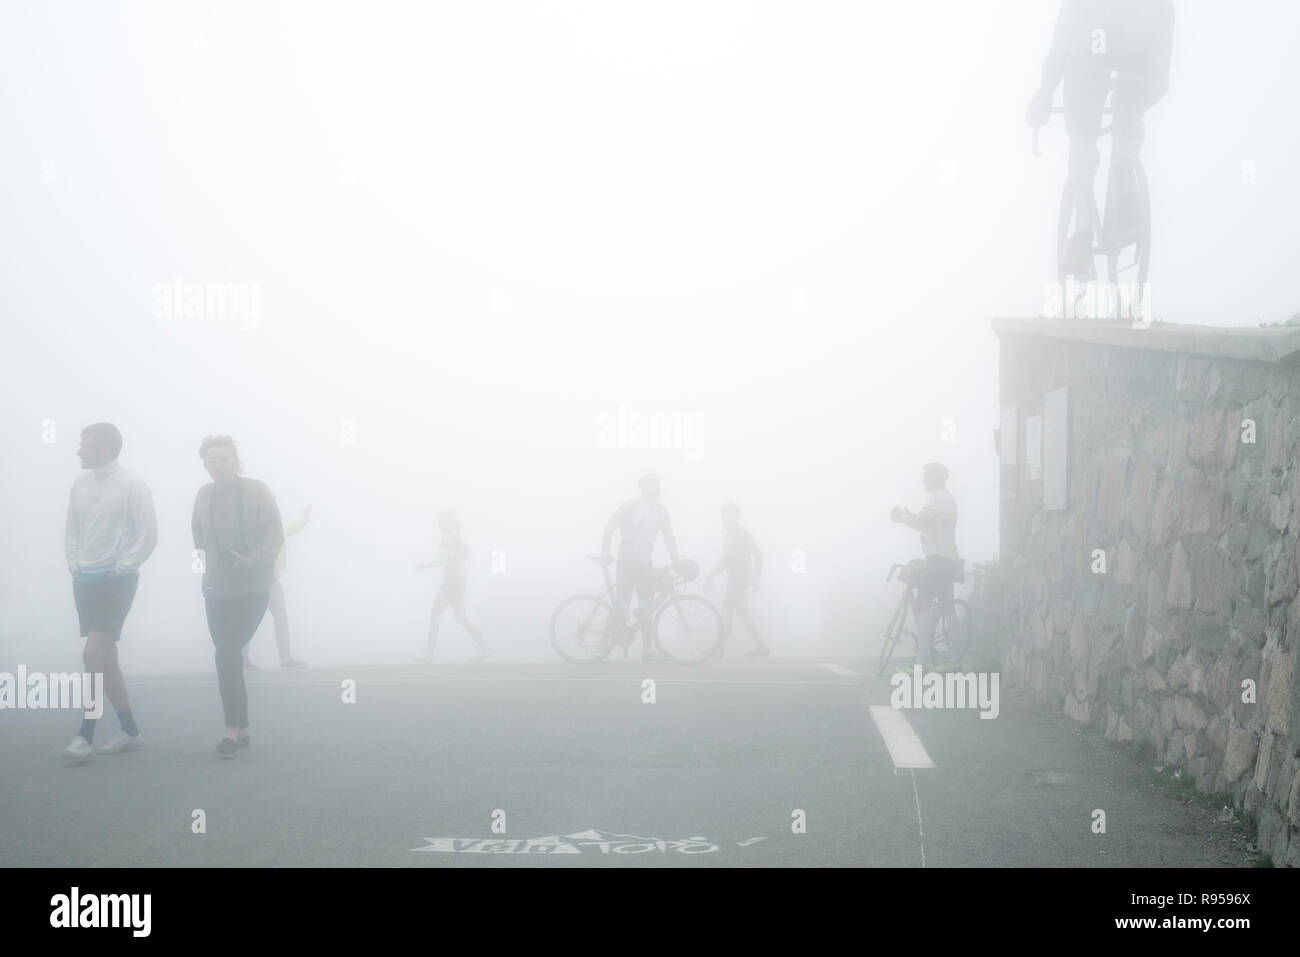 Tourists watching the statue for Tour de France cyclist Octave Lapize at the Col du Tourmalet in thick mist in the Pyrenees, France Stock Photo